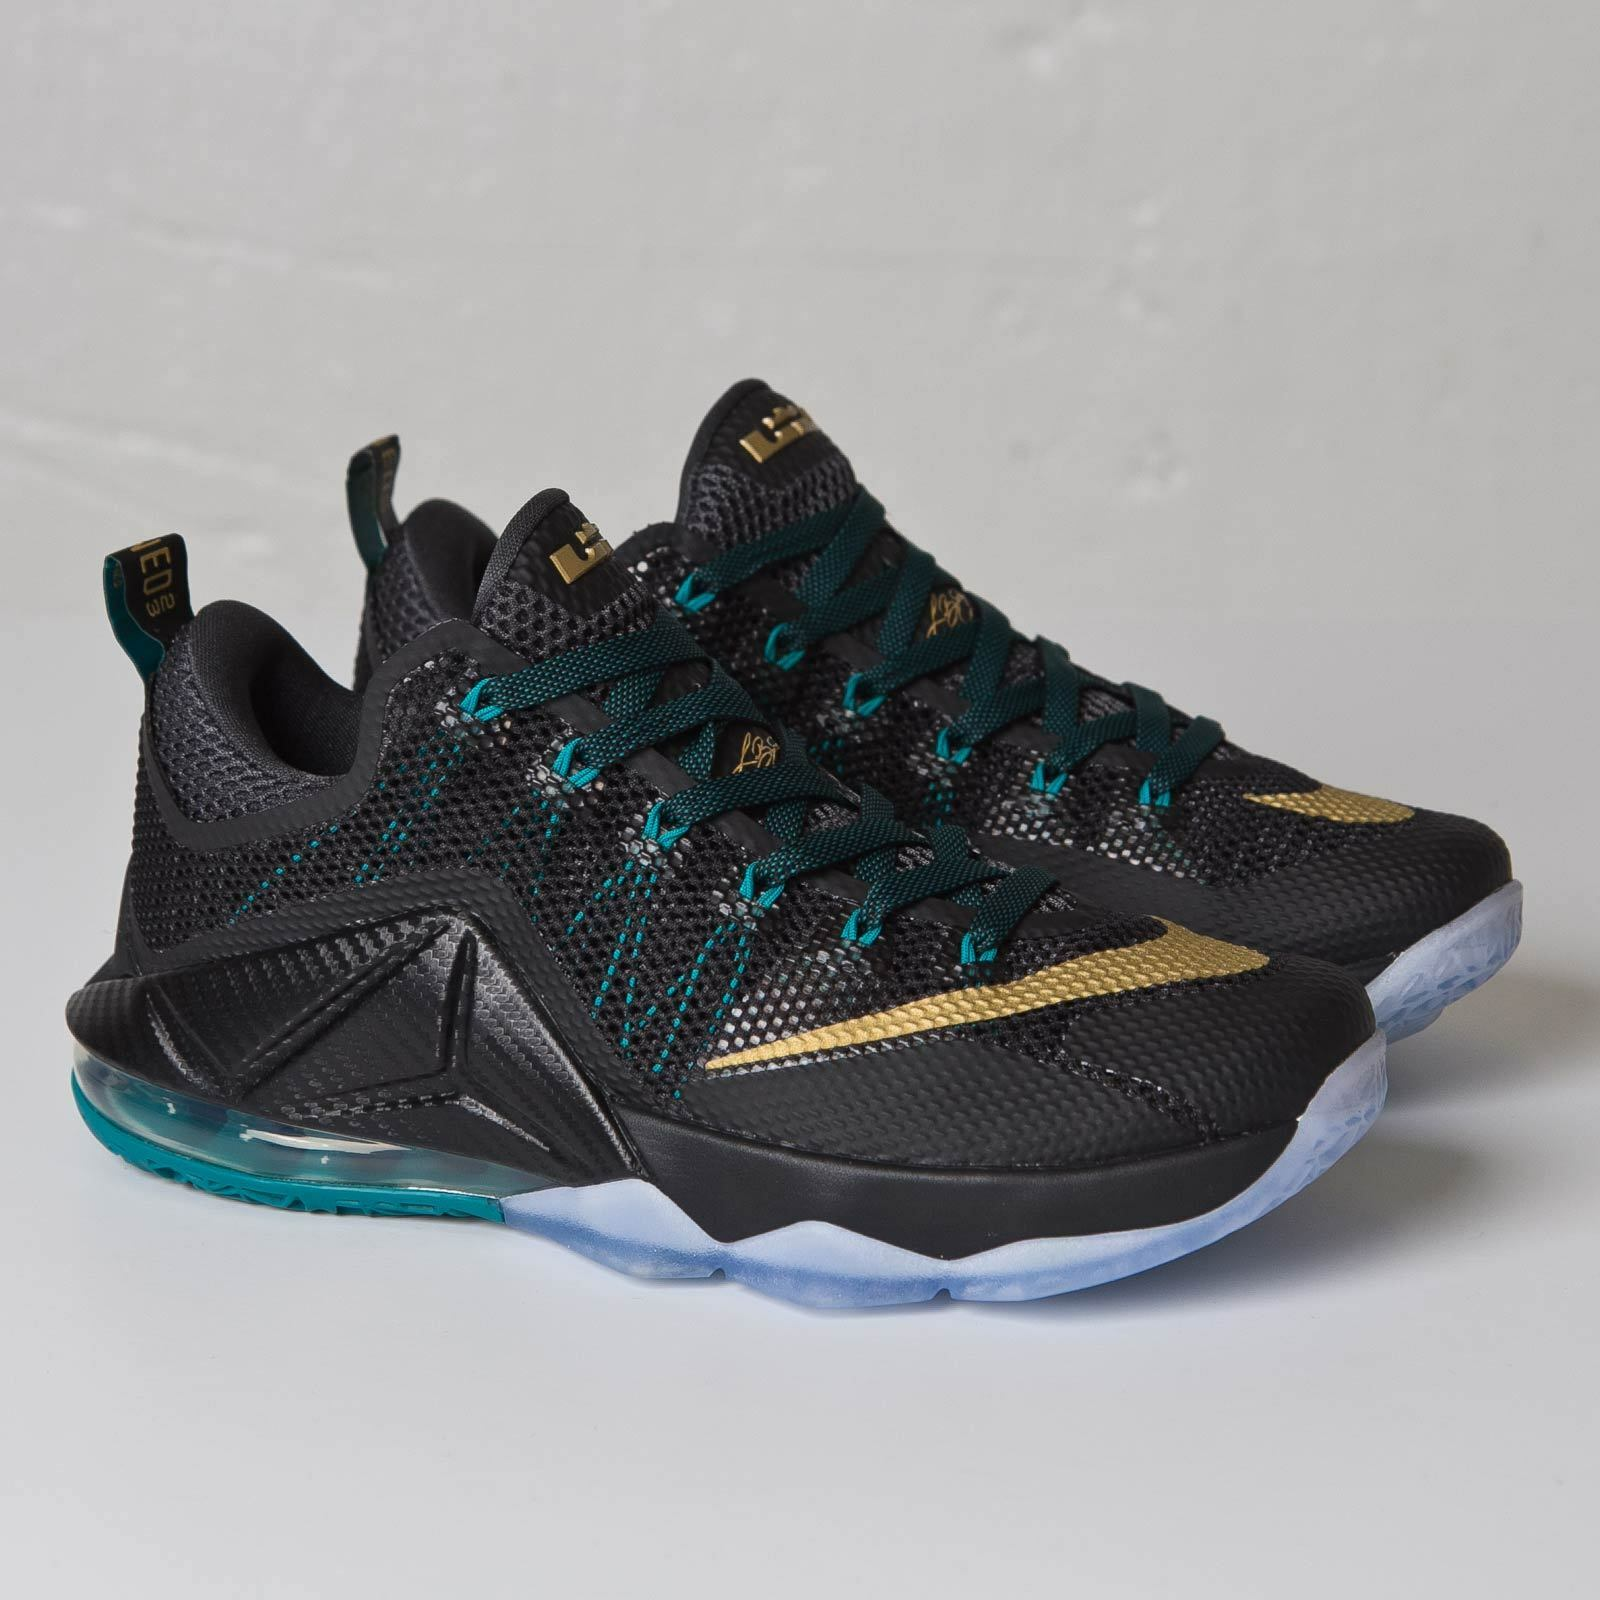 Mens Nike Air Lebron XII Low Sneakers New, Black / Gold 724557-070 SKU AA